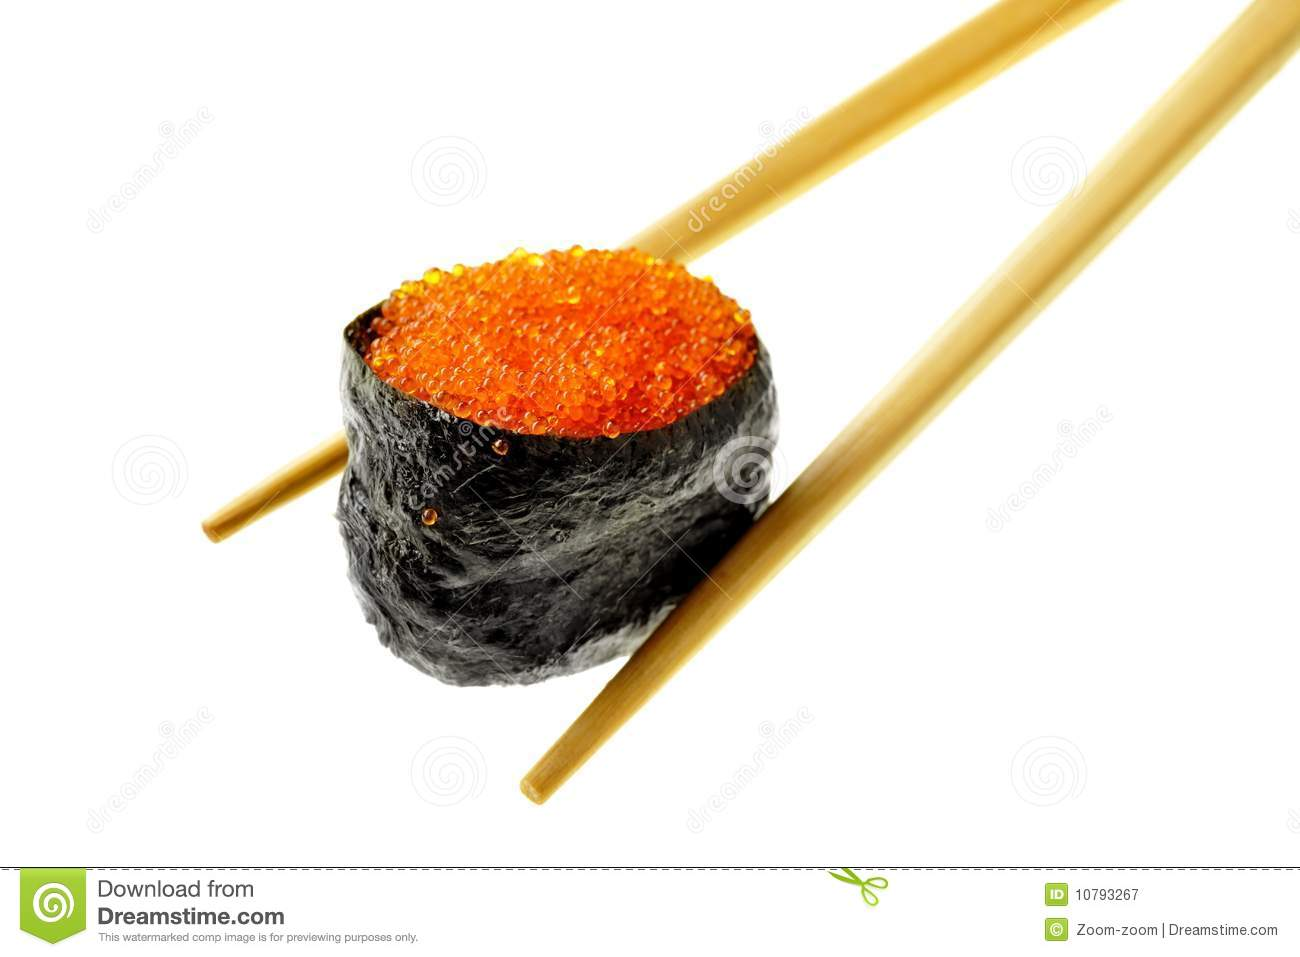 how to cook fish for sushi